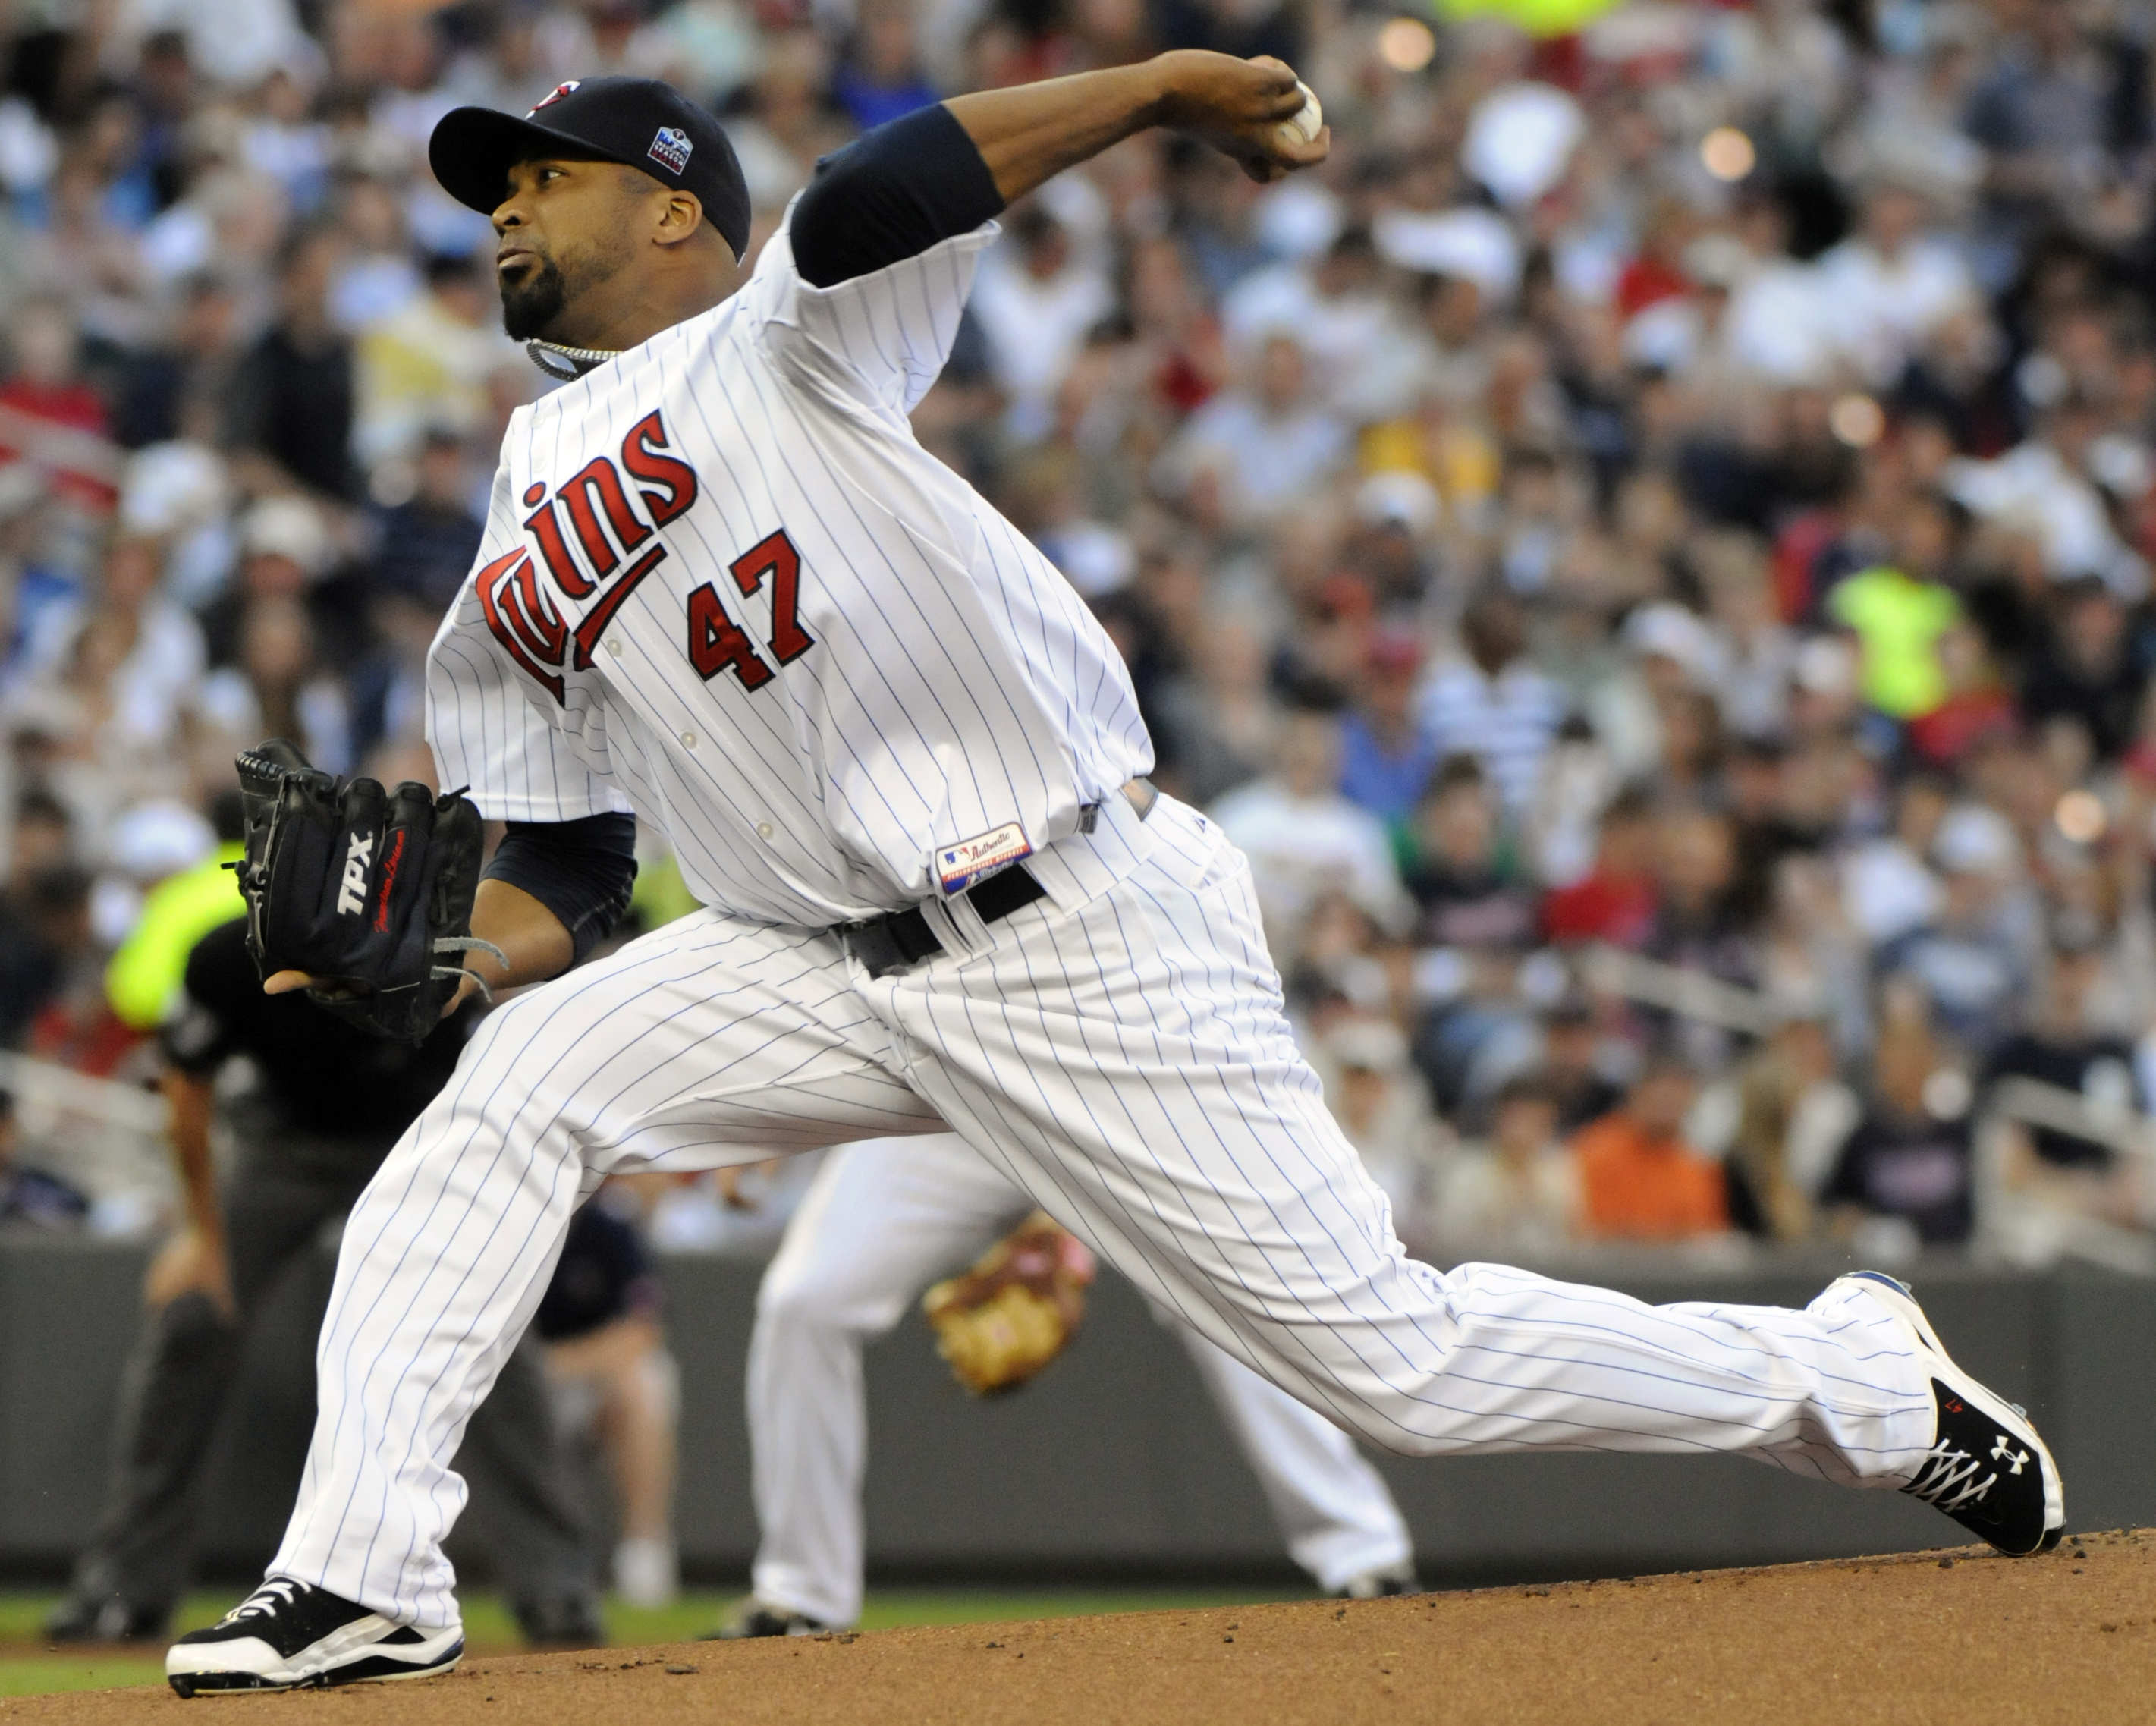 MINNEAPOLIS, MN - JUNE 28:  Francisco Liriano #47 of the Minnesota Twins pitches in the first inning against the Detroit Tigers during their game on June 28, 2010 at Target Field in Minneapolis, Minnesota. (Photo by Hannah Foslien /Getty Images)